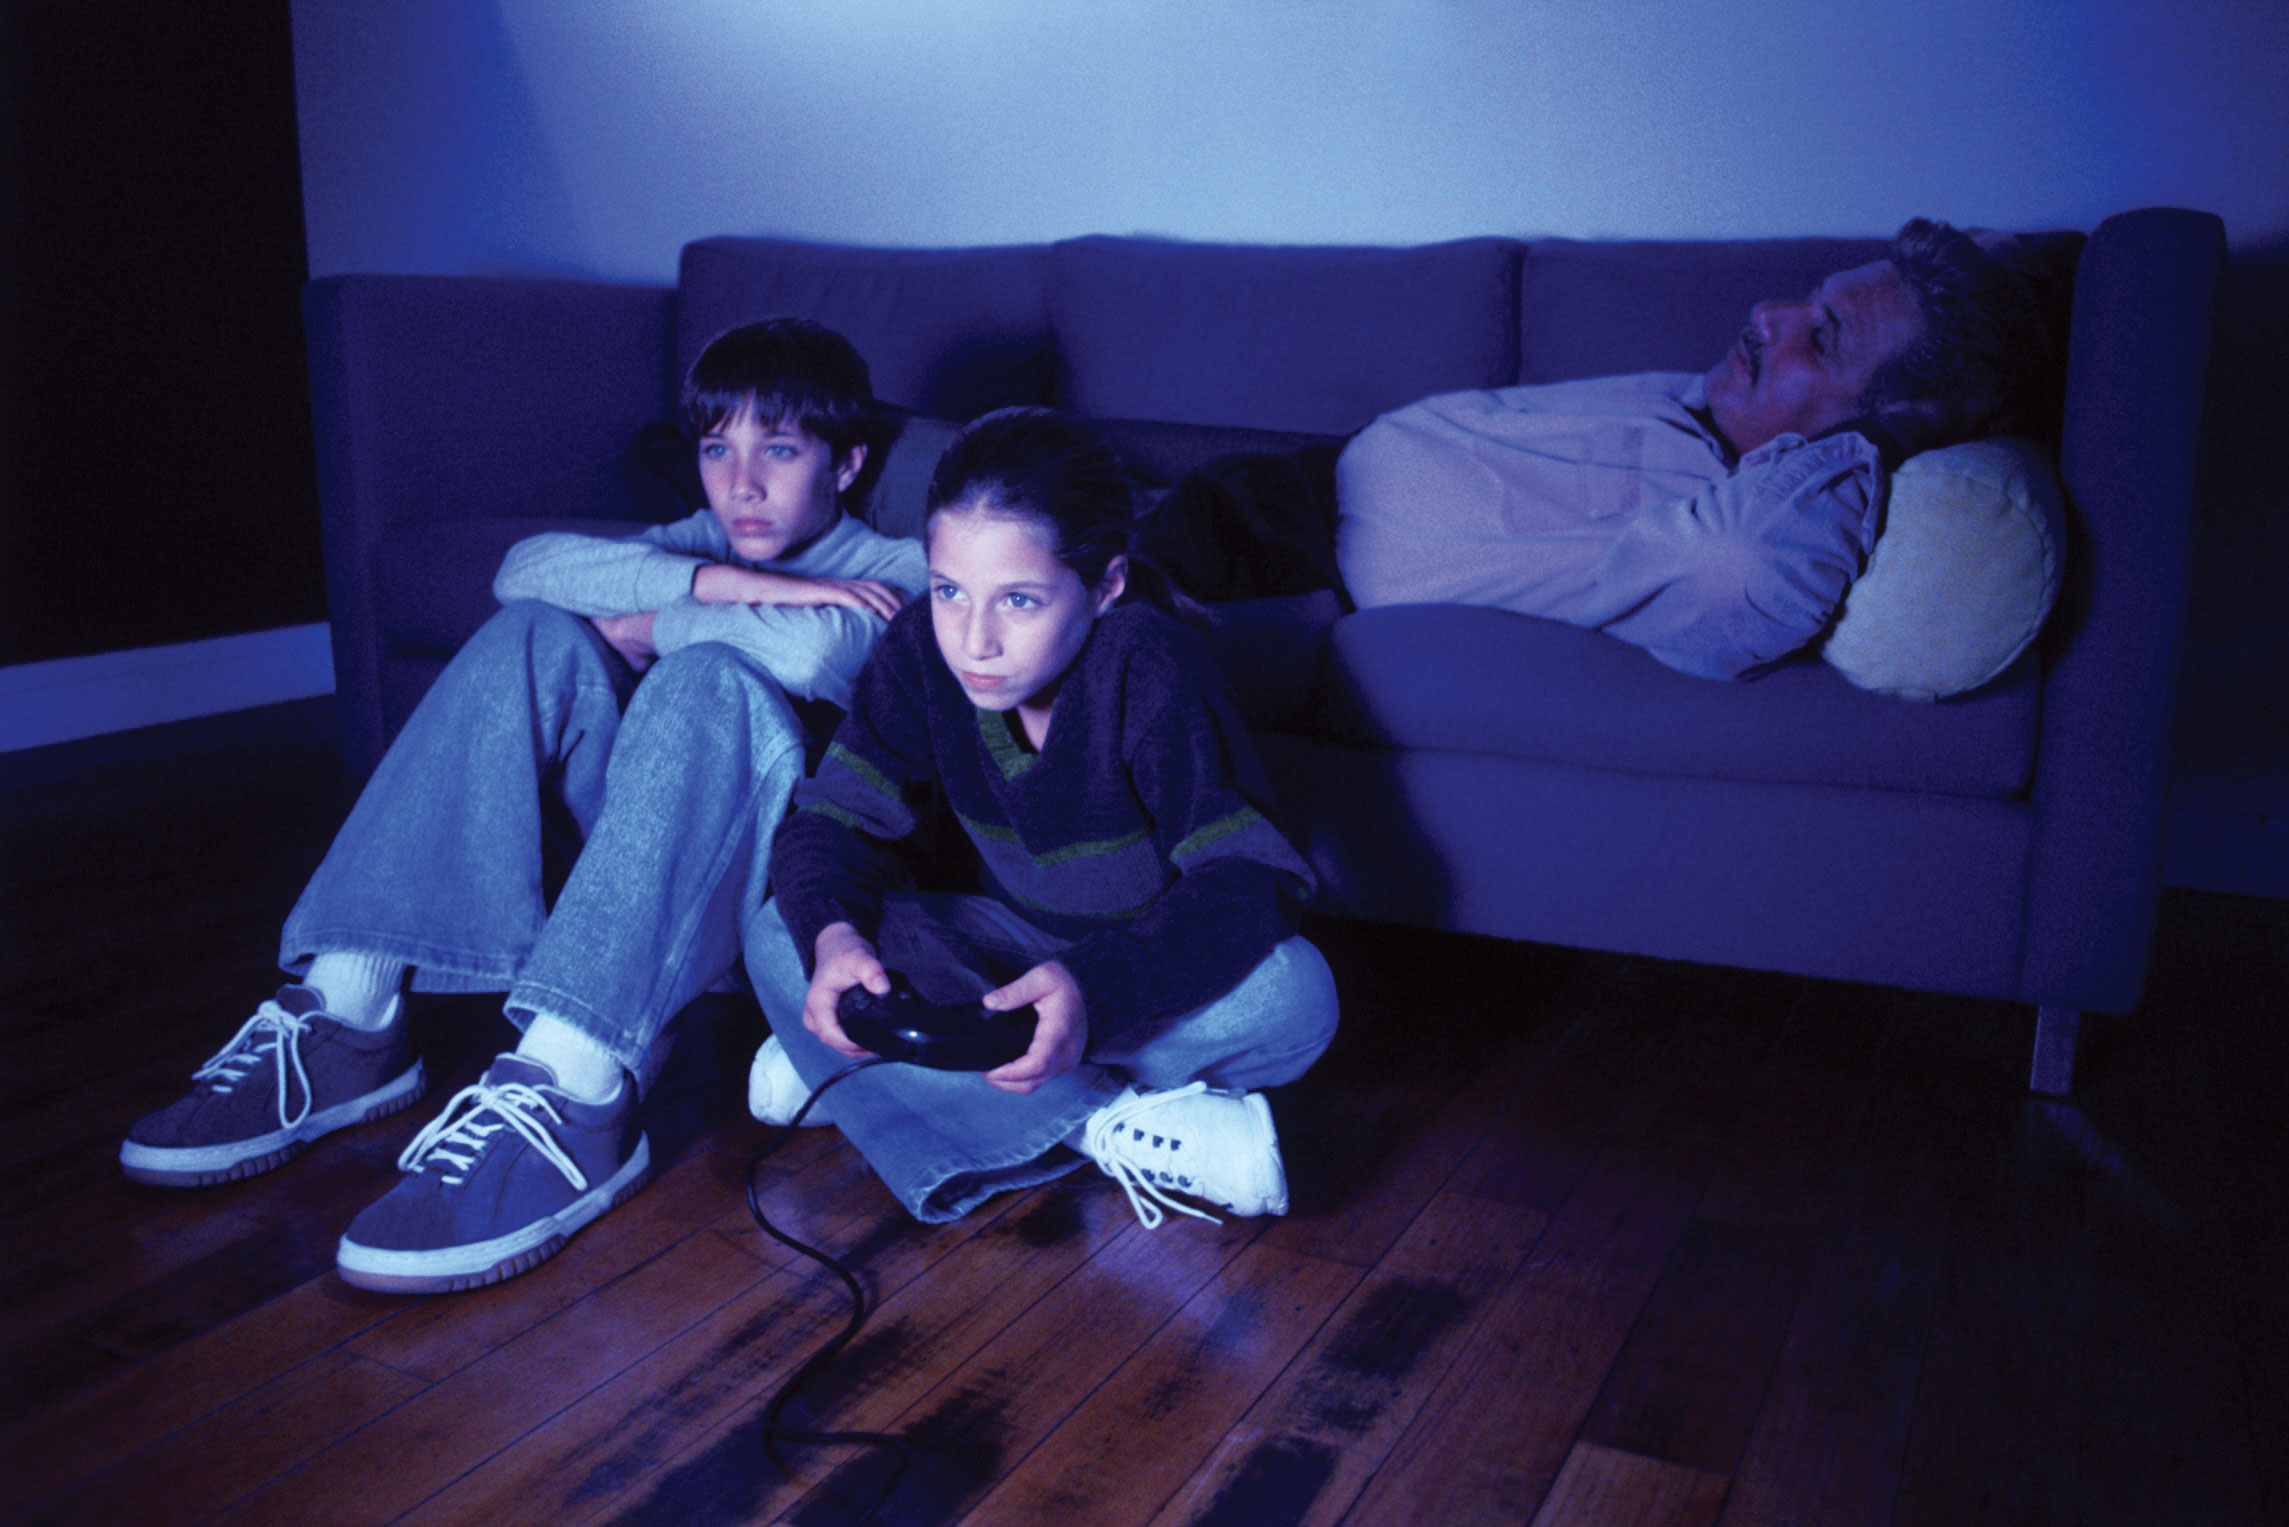 a research on the correlation between violence and playing video games These include a general failure to look for any differences in outcomes between boys and girls who play violent video games a dearth of studies that have examined the effects of violent video game play on children younger than 10 and a lack of research that has examined the games' effects over the course of children's development.